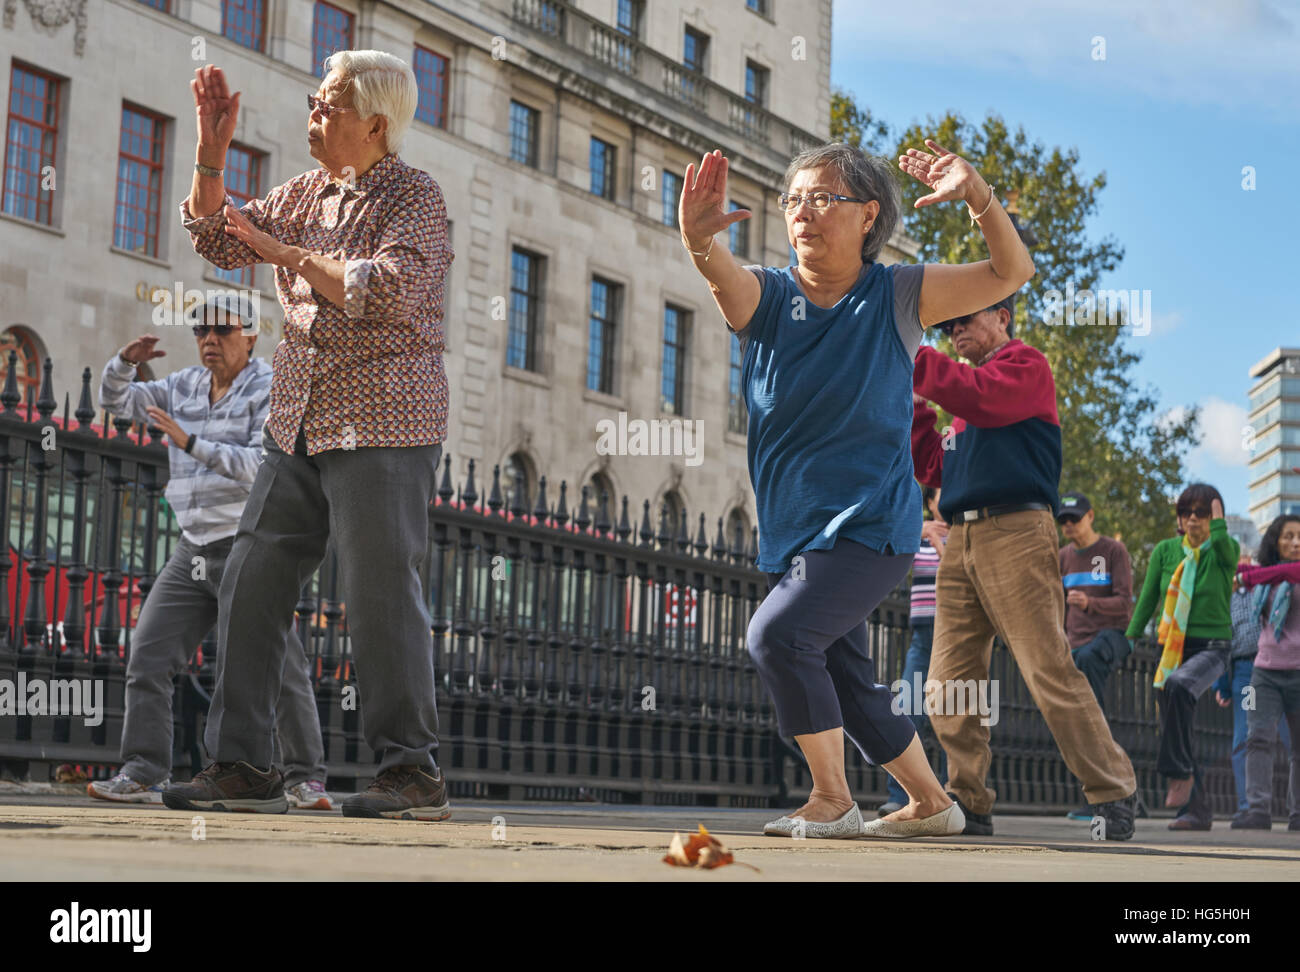 outdoor tai chi in London. chinese community in London - Stock Image